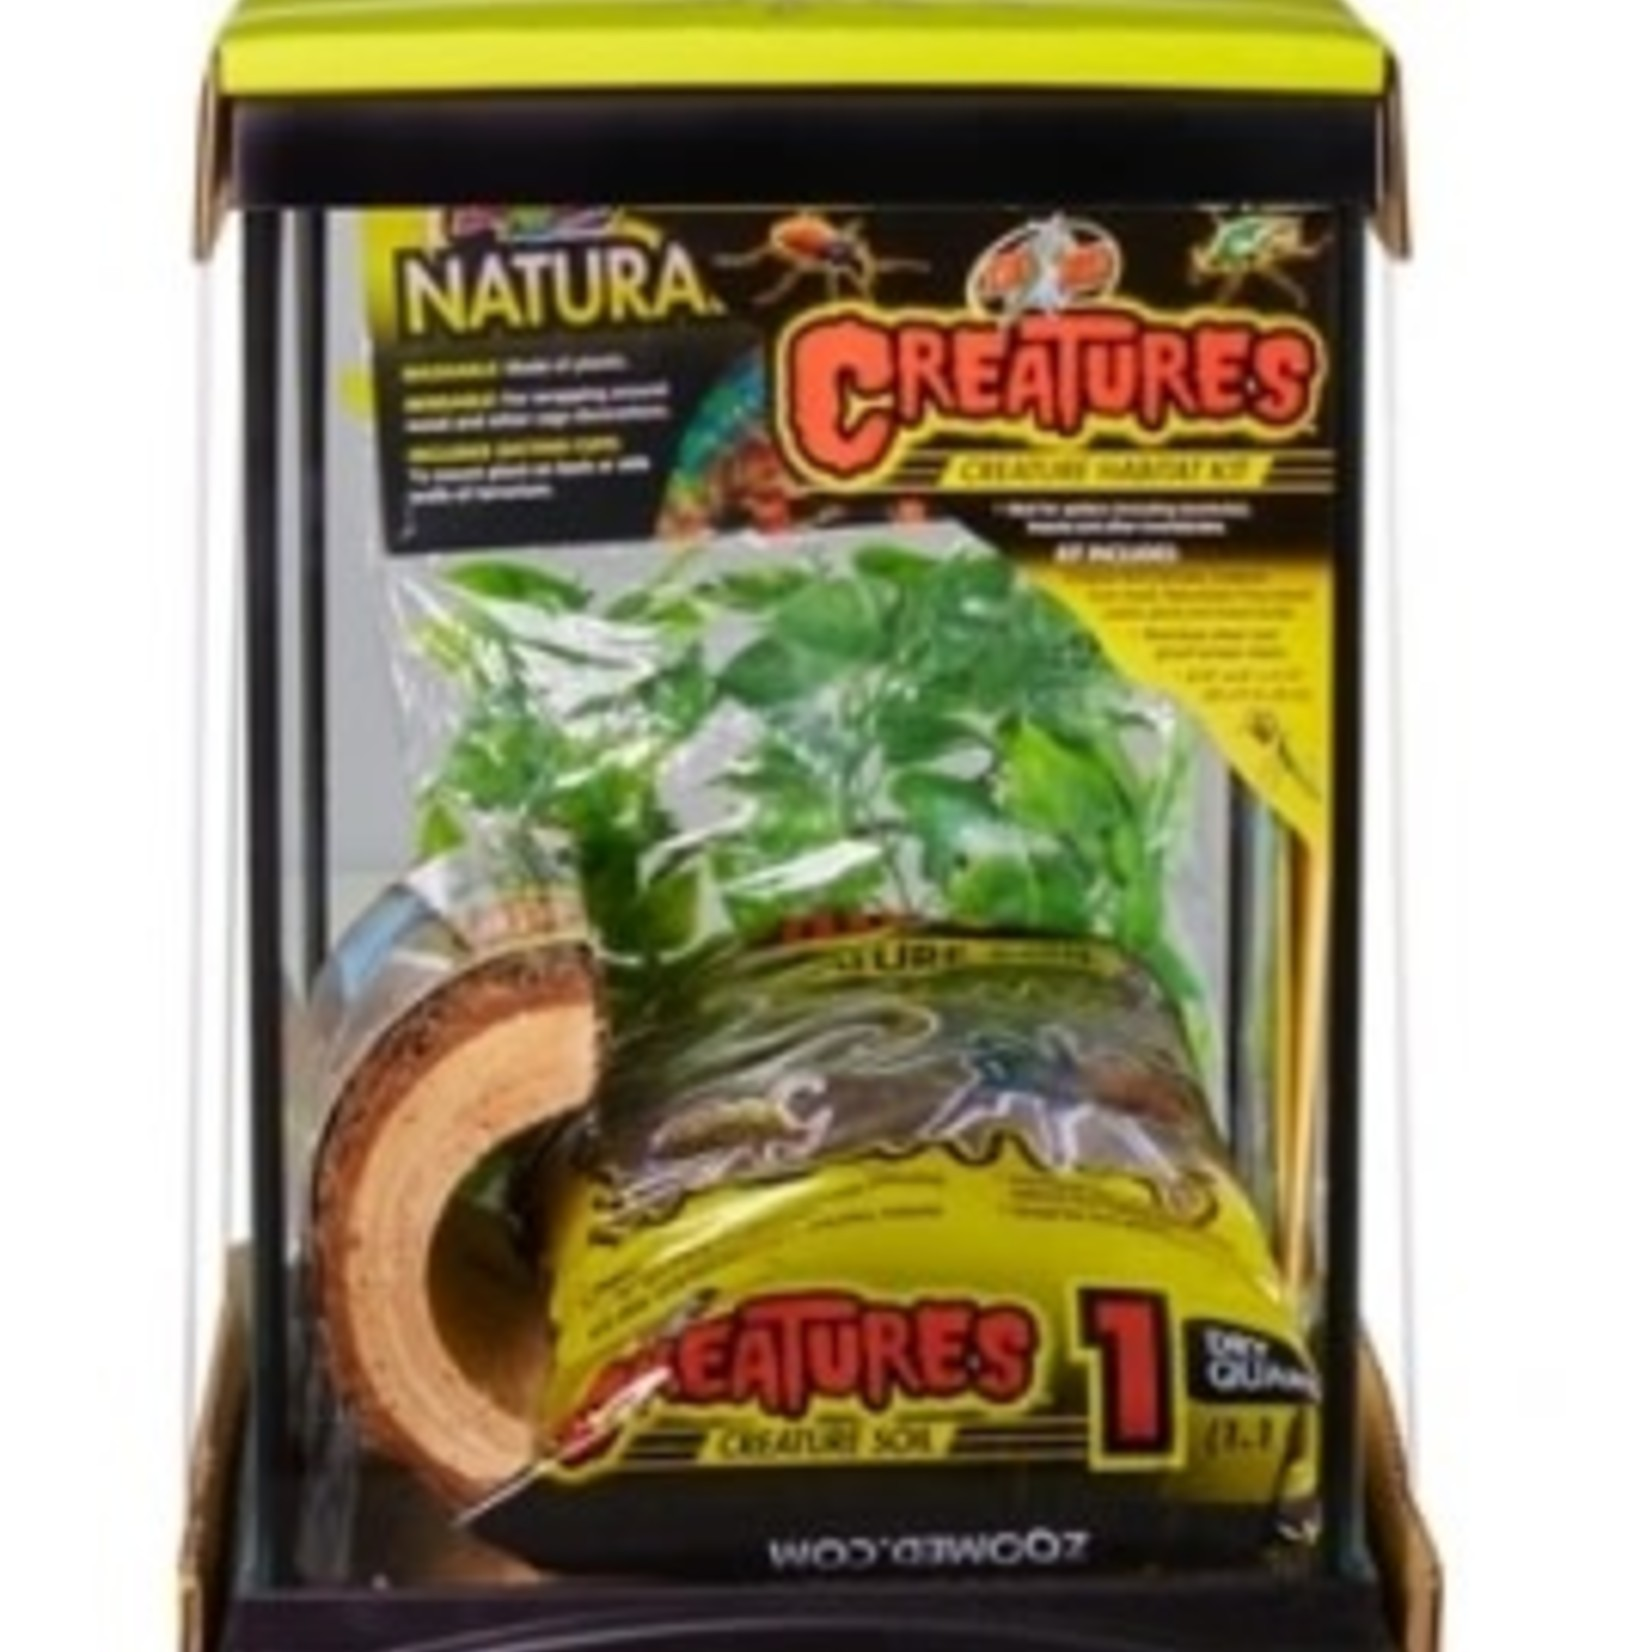 Zoomed Creatures Habitat Kit Zoomed